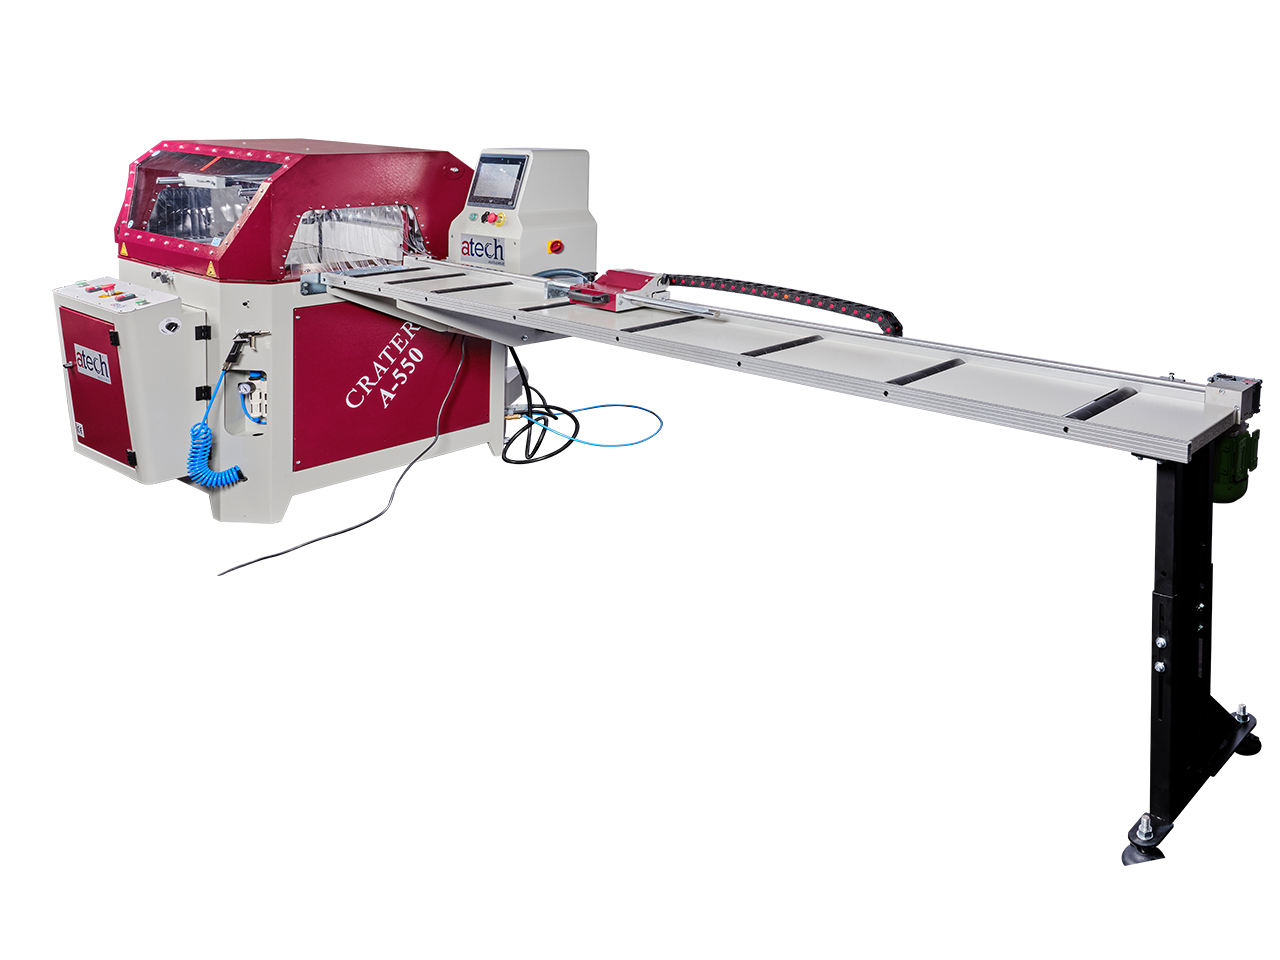 CRATER-06 A550 is a heavy duty 22 (550 mm) automatic aluminium profile upcut miter saw (9)